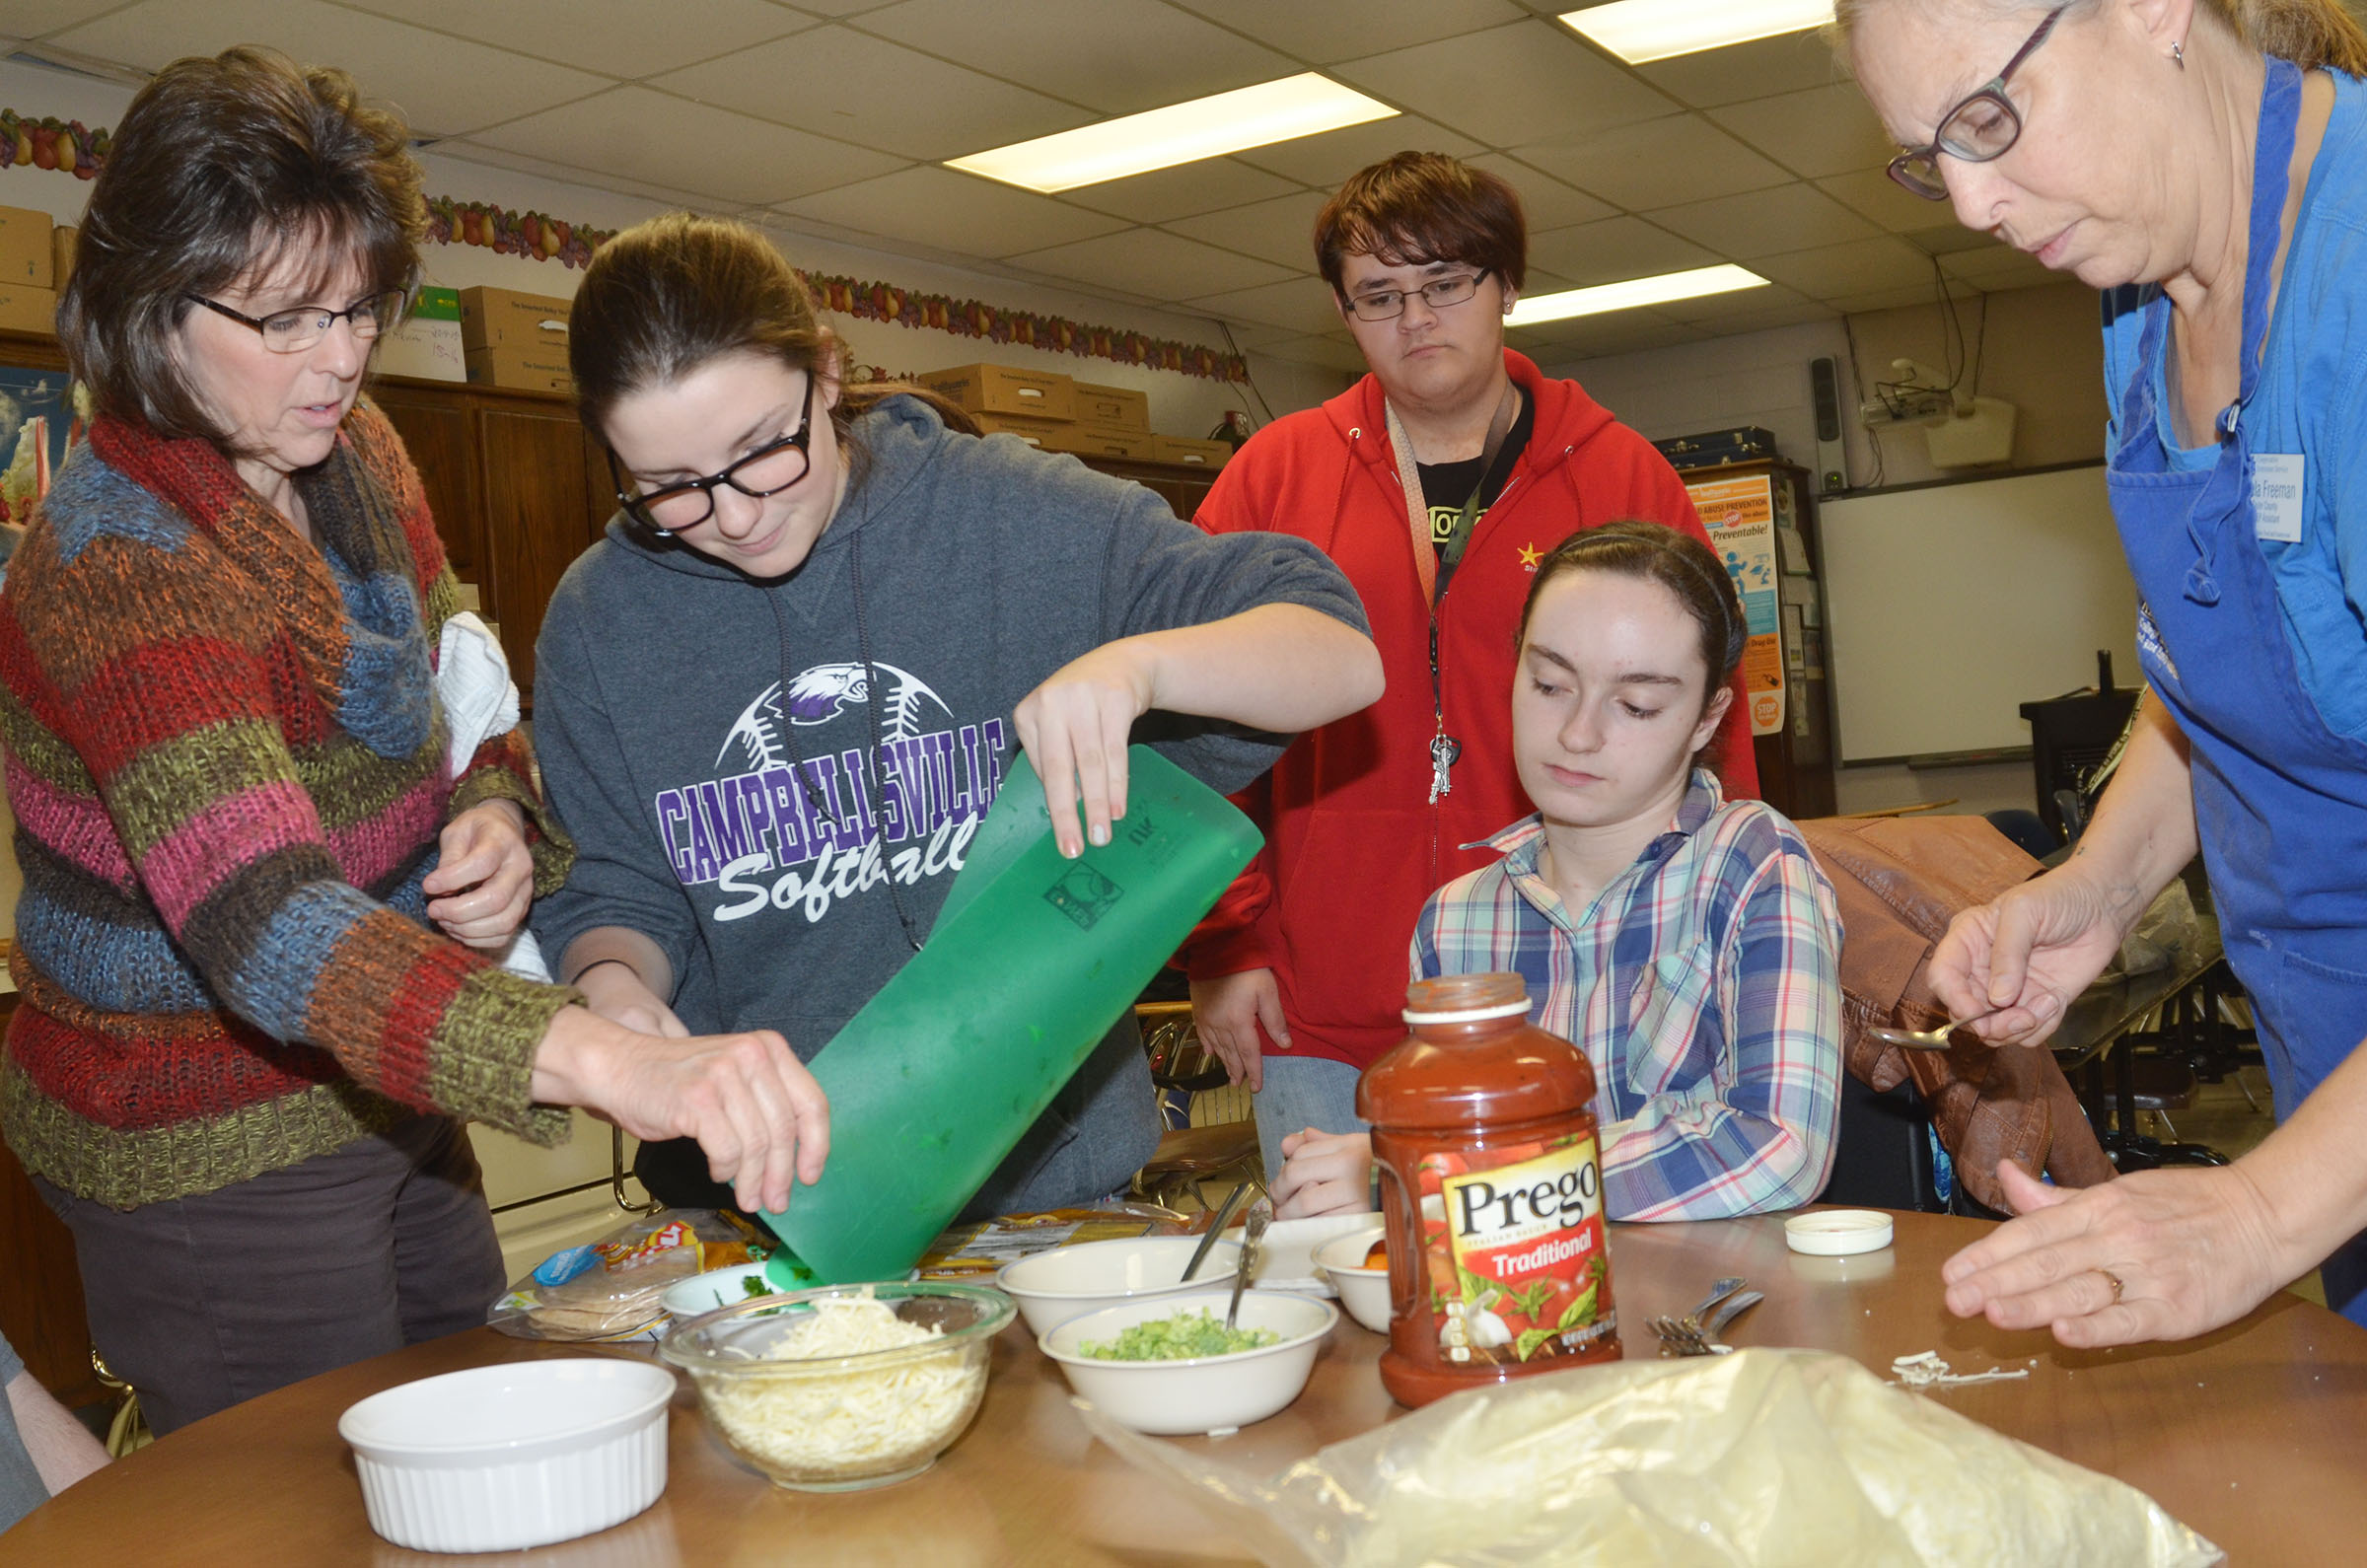 CHS teacher Deanna Campbell, at left, and Angie Freeman, expanded foods and nutrition program assistant at Taylor County Extension Office, at right, help students prepare ingredients for tortilla pizzas. From left are freshman Sydney Wilson, junior Aidan McMahan and freshman Jewell Cox.